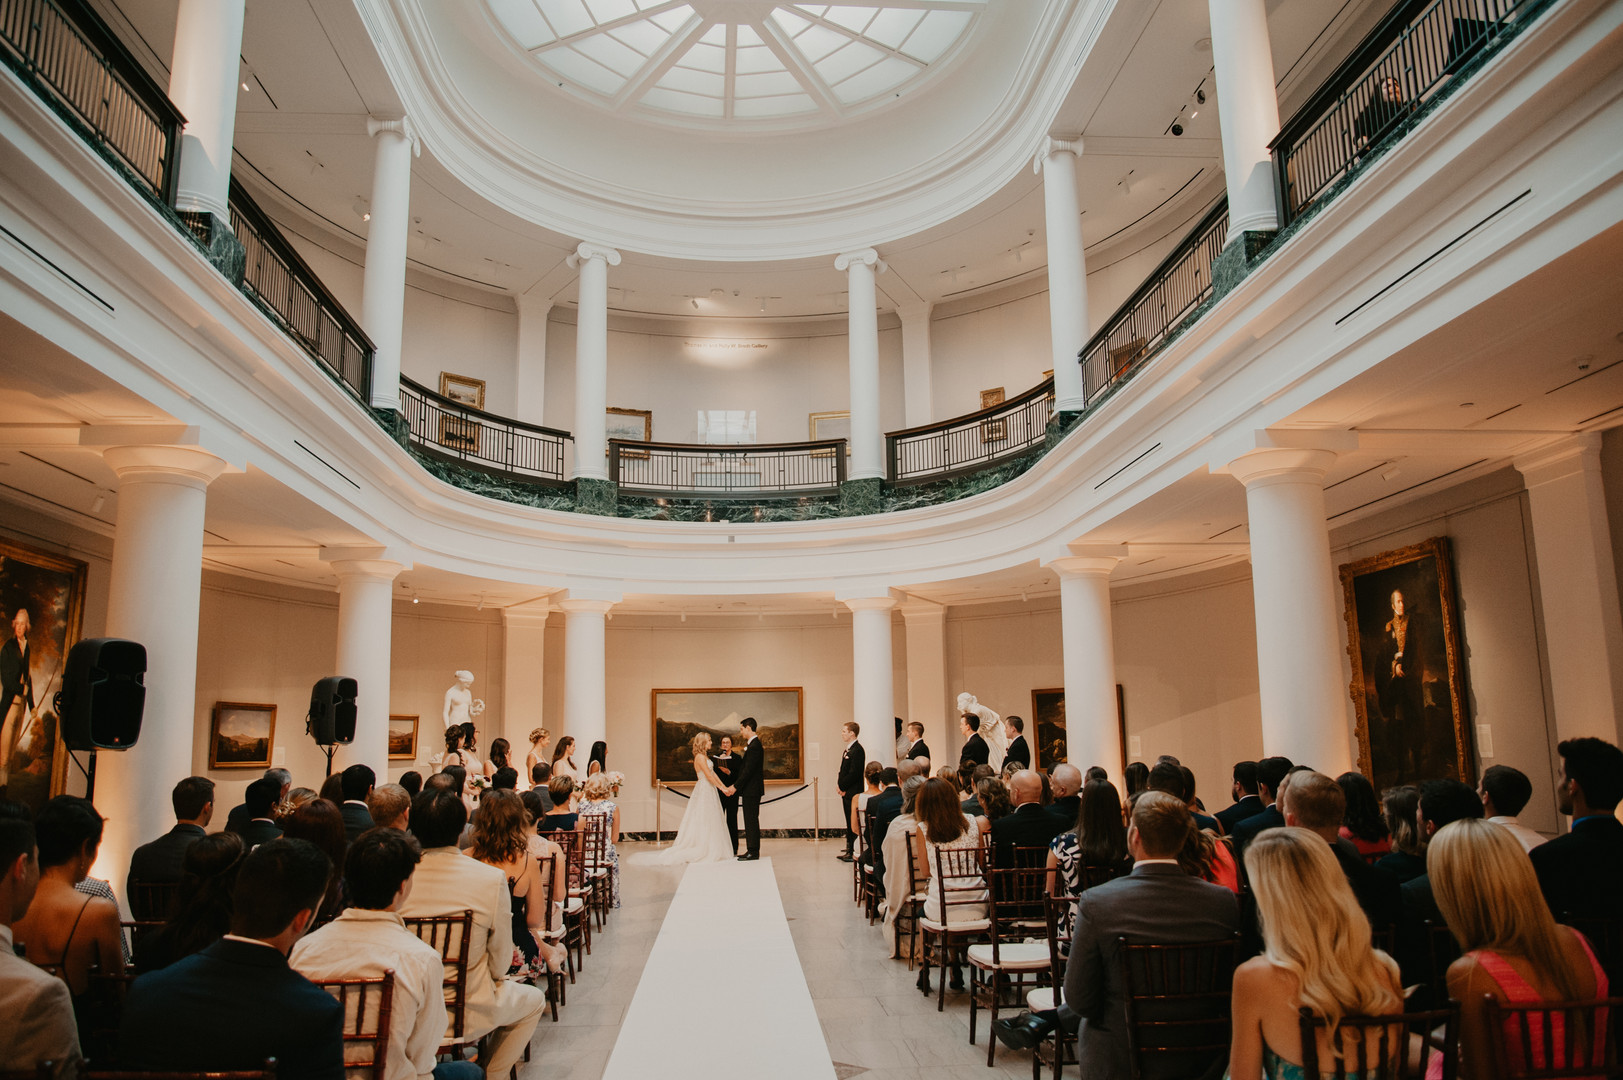 umma university of michigan museum of art wedding